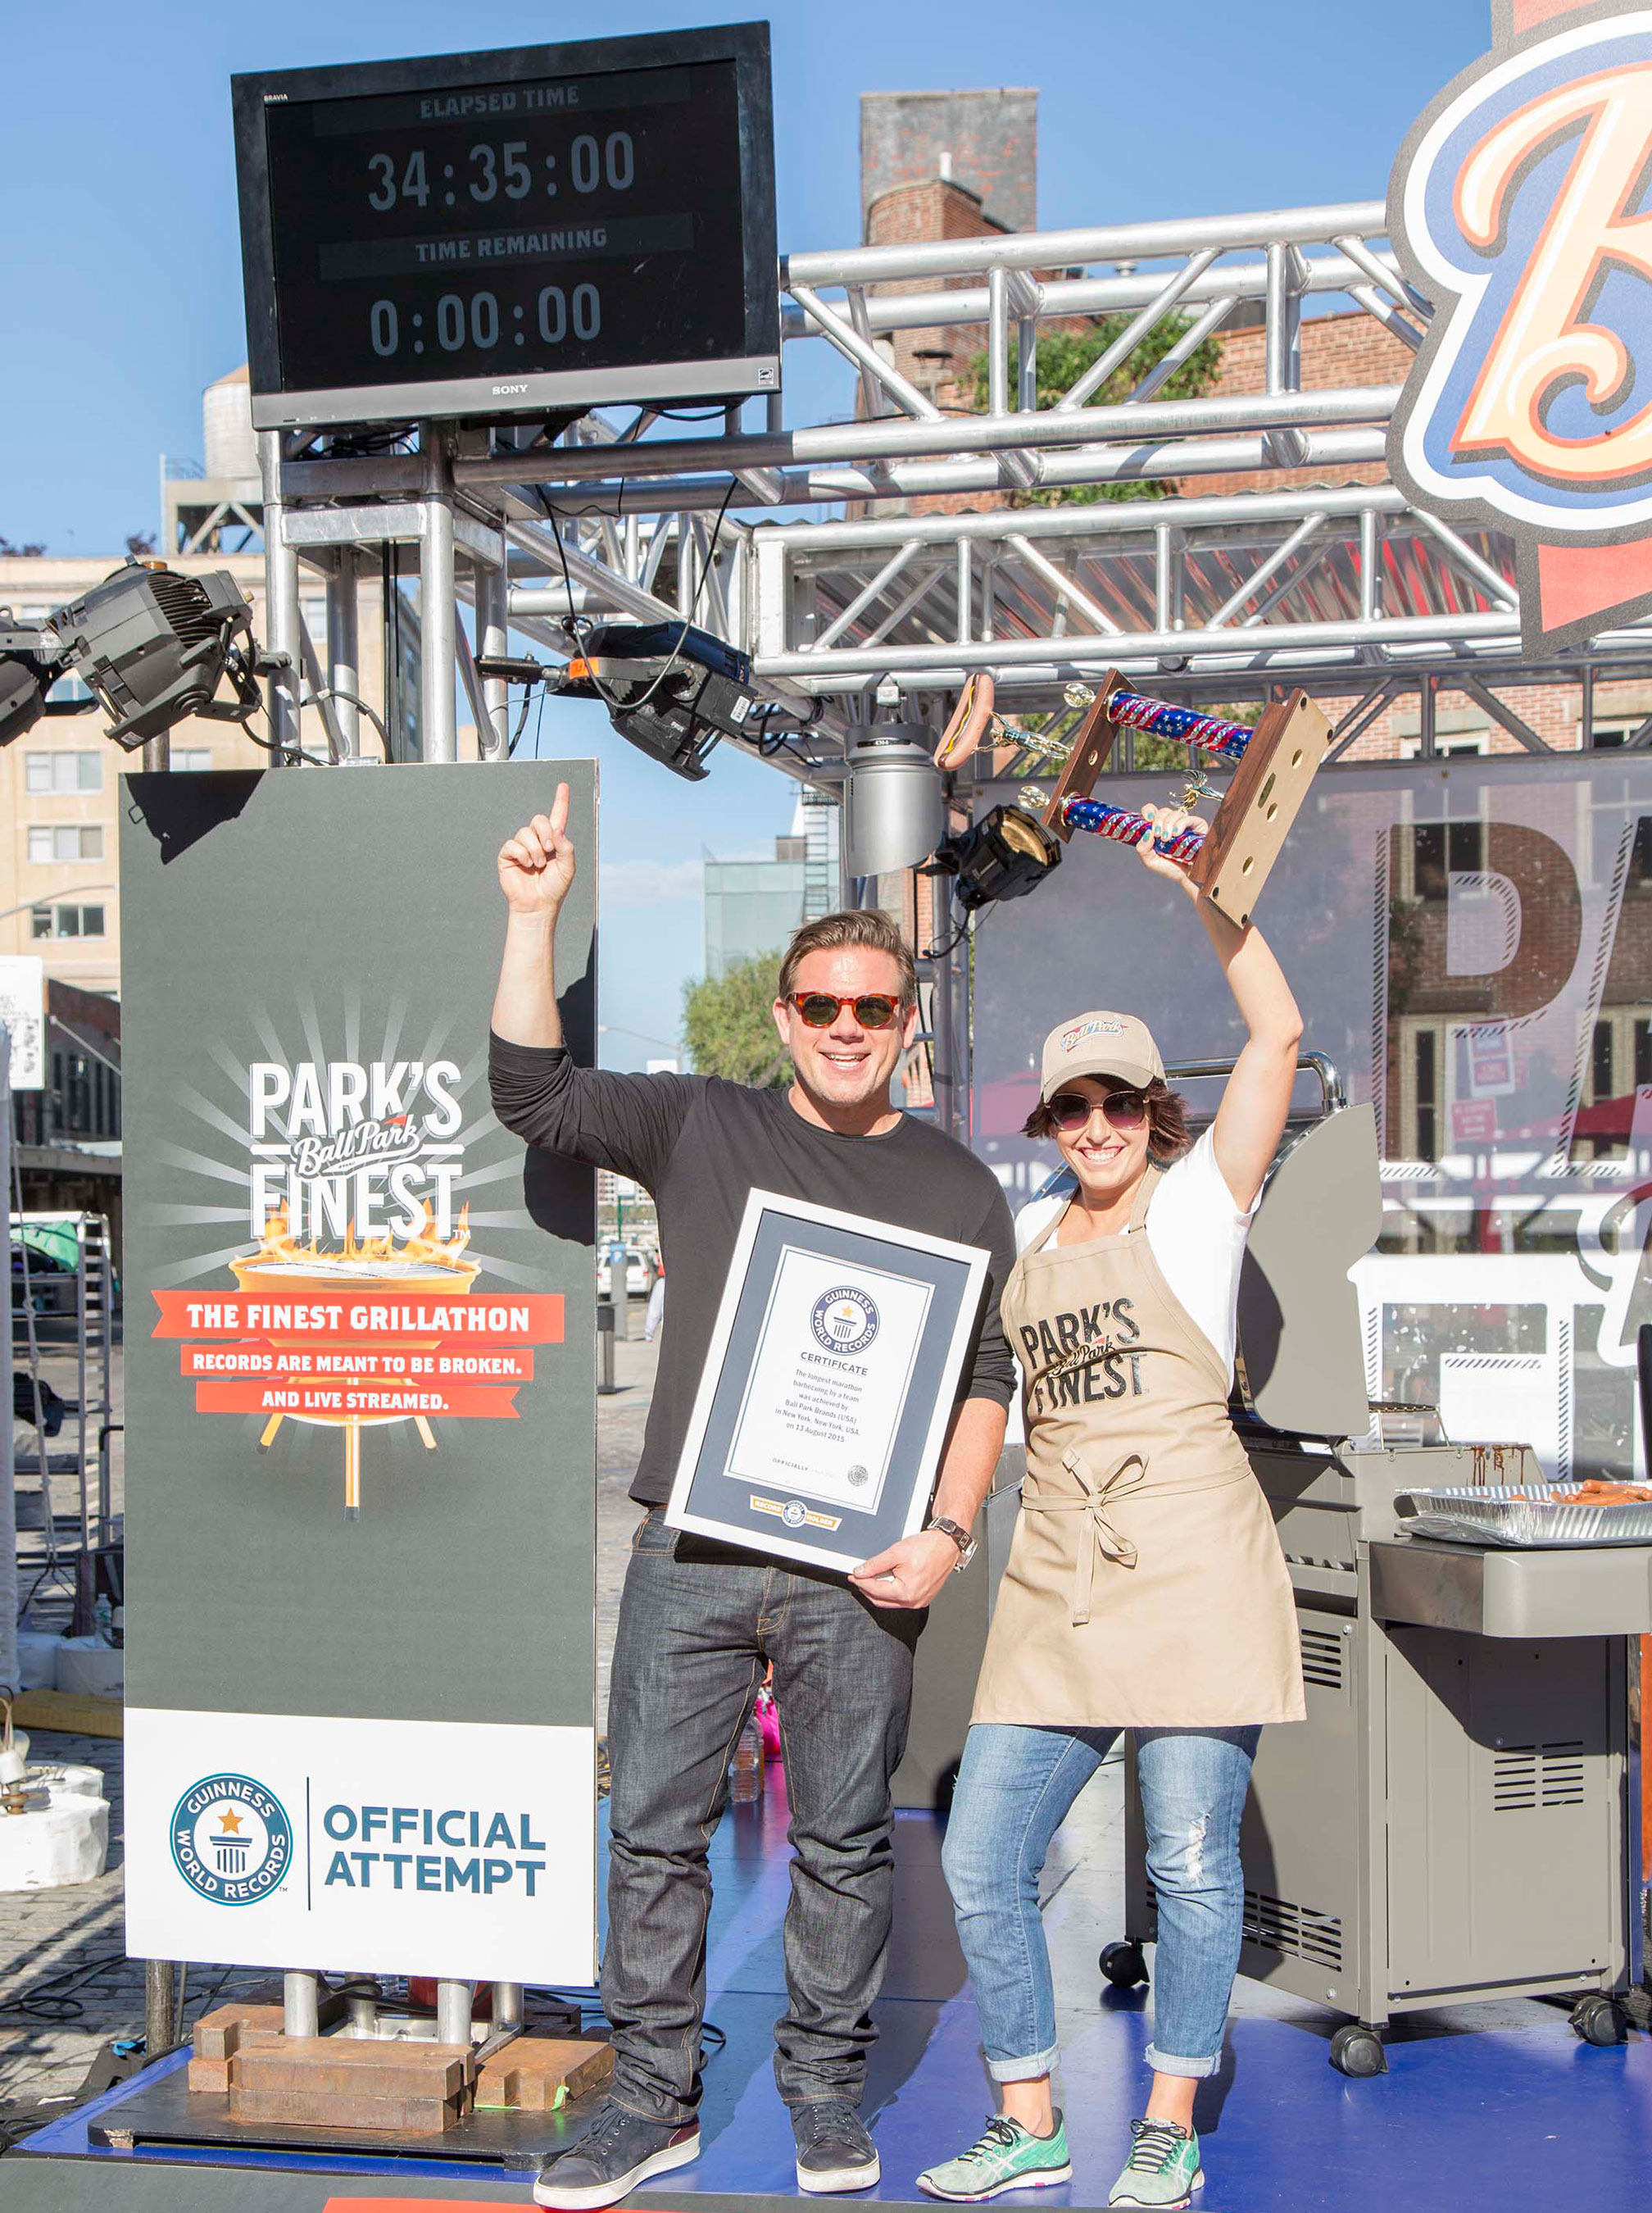 Tyler Florence celebrates victory after 34+ hour grillathon with Ball Park Park's Finest™ franks